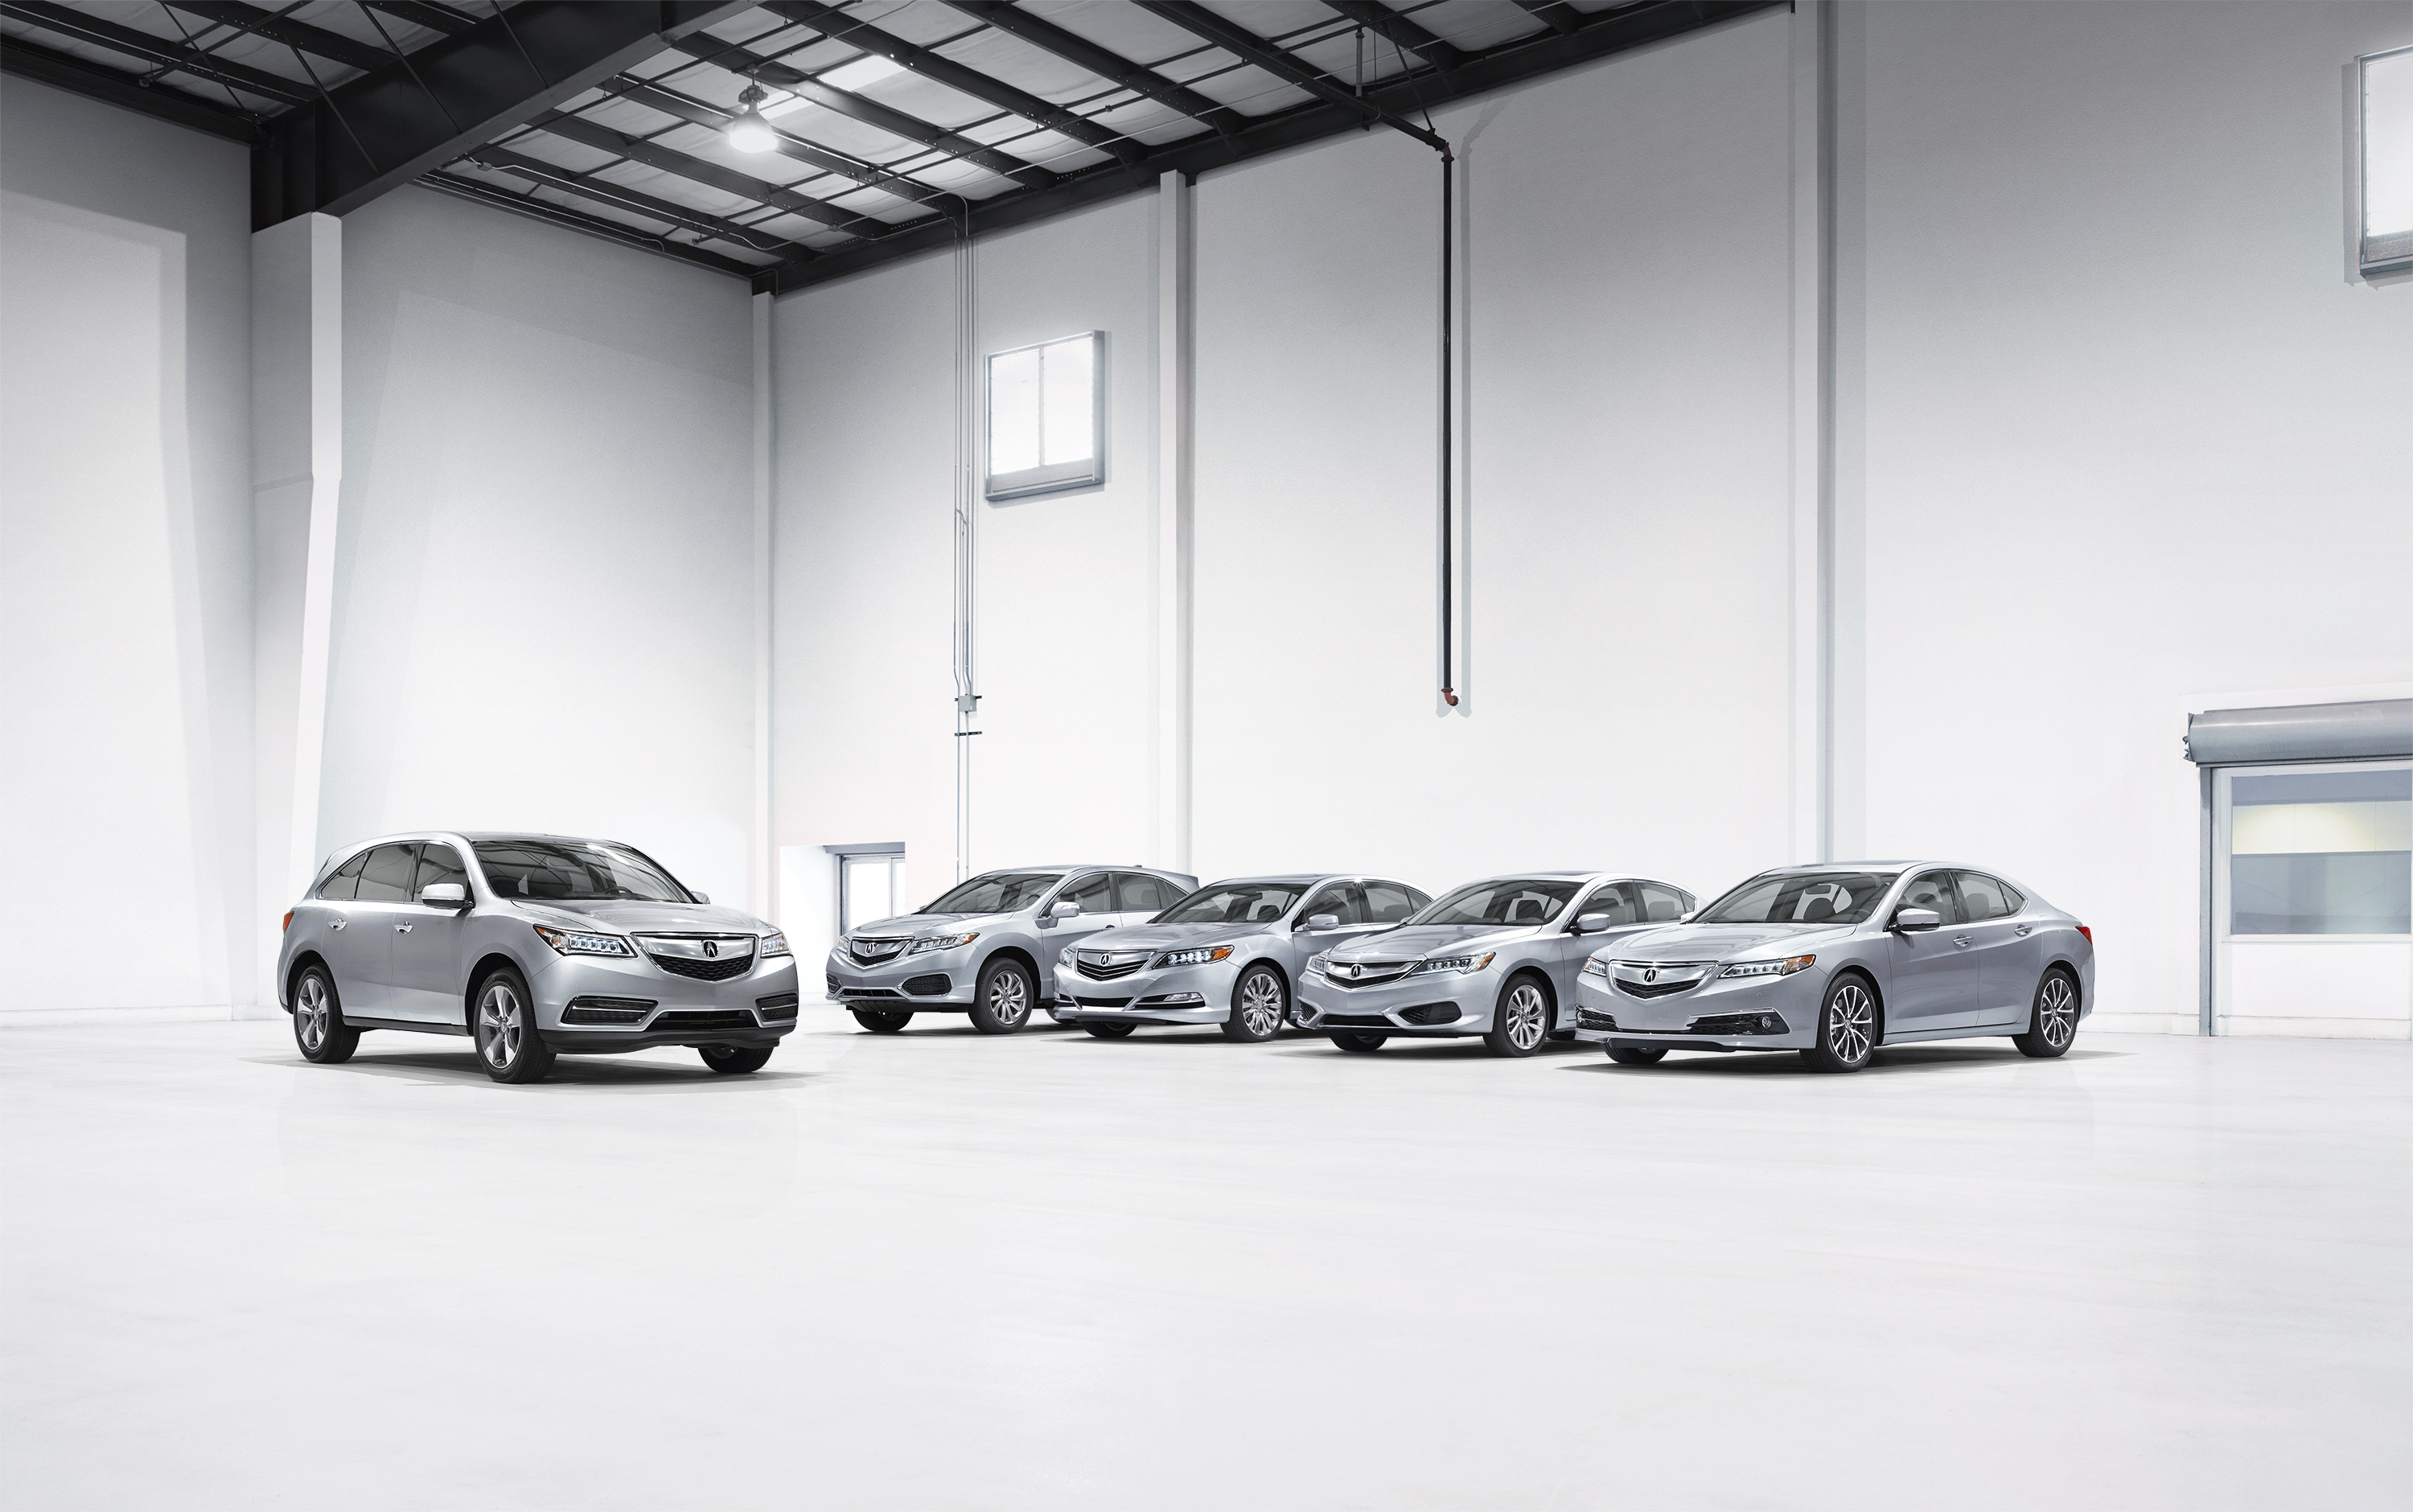 More Than Half of Acura's U.S. Vehicle Sales in nd's 30-year ... Acura Years on